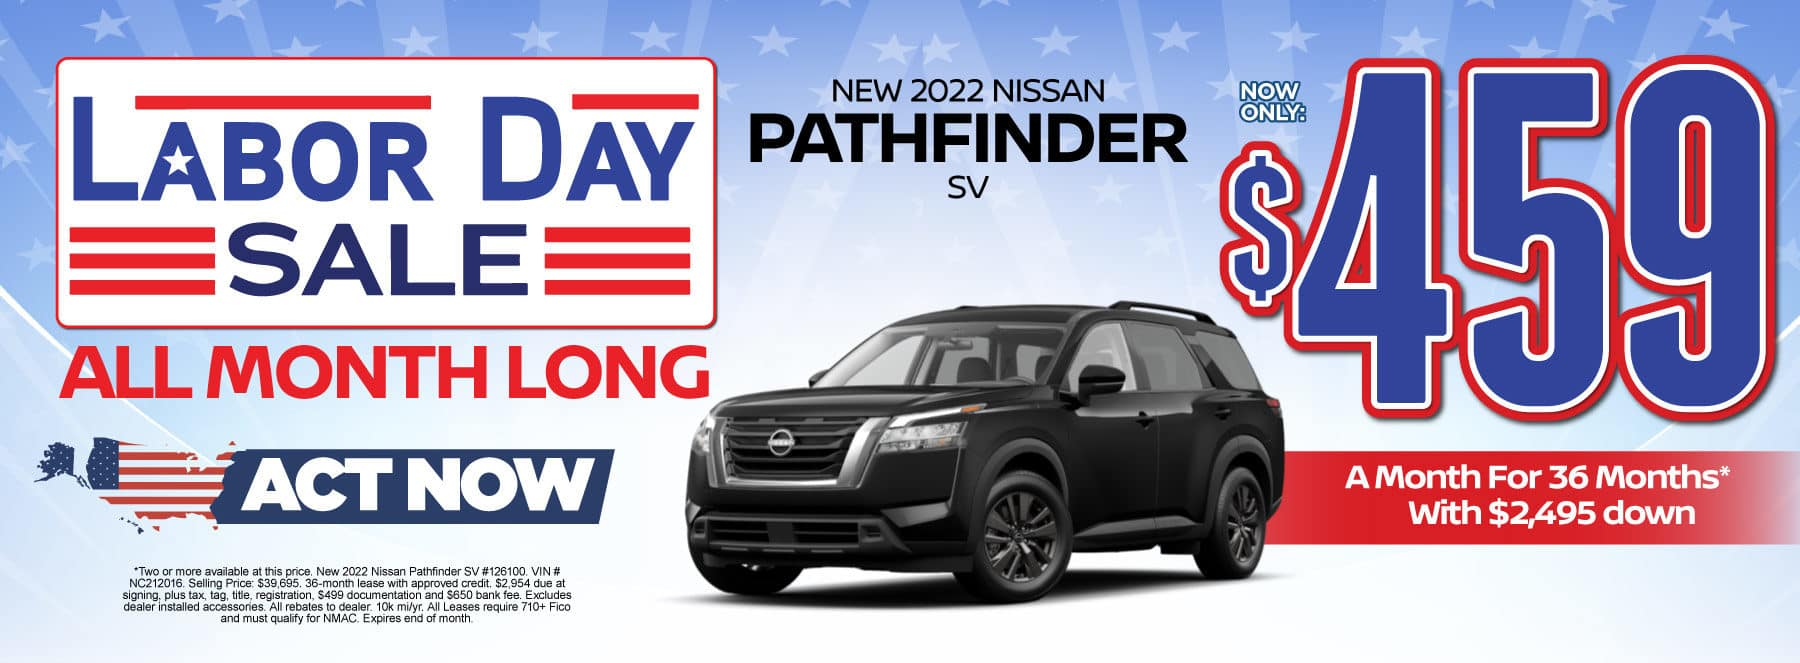 New 2022 Nissan Pathfinder - Now only $459 a month - Act Now